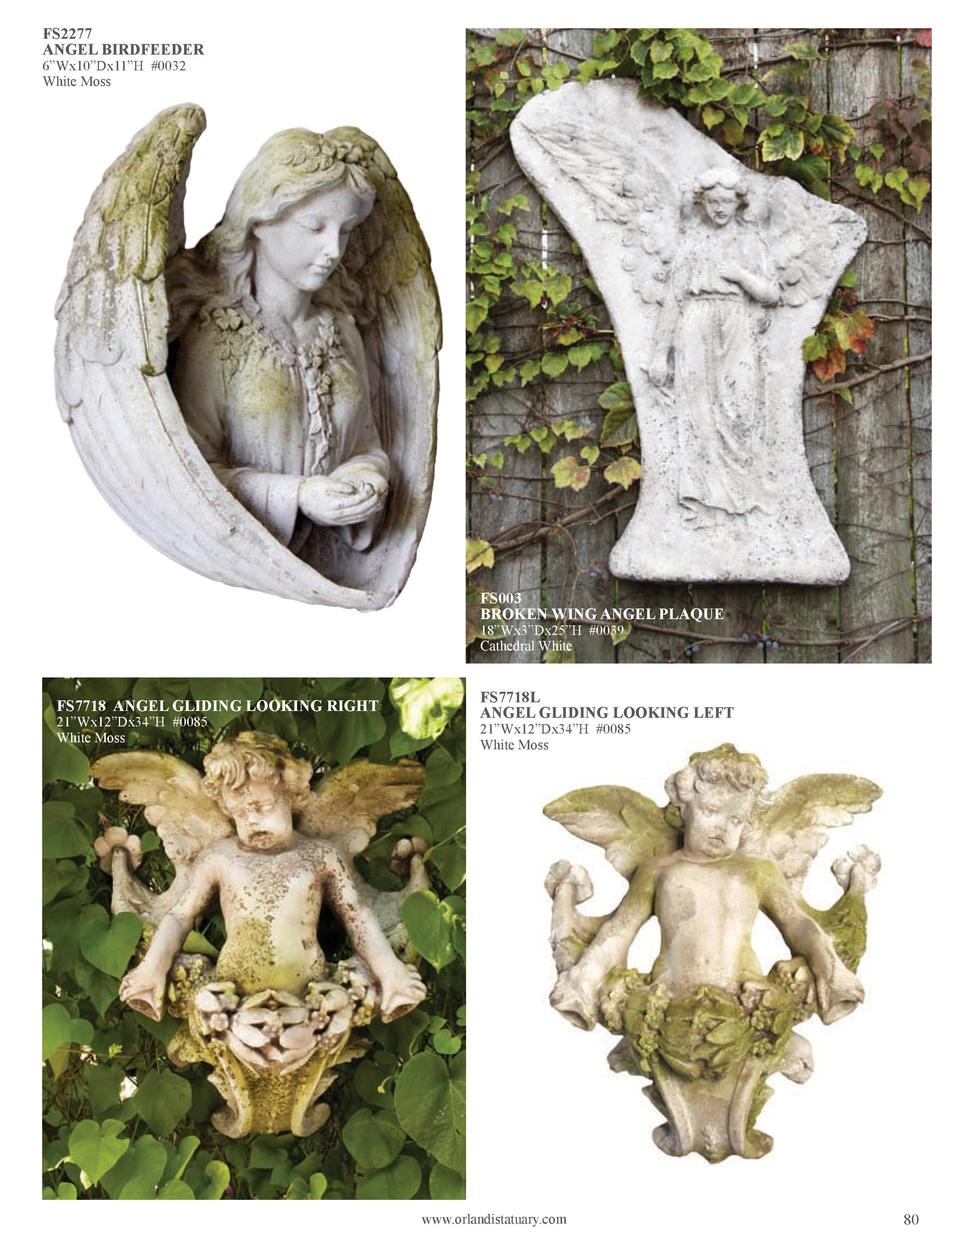 FS2277 ANGEL BIRDFEEDER 6   Wx10   Dx11   H  0032 White Moss  FS003 BROKEN WING ANGEL PLAQUE 18   Wx3   Dx25   H  0039 Cat...